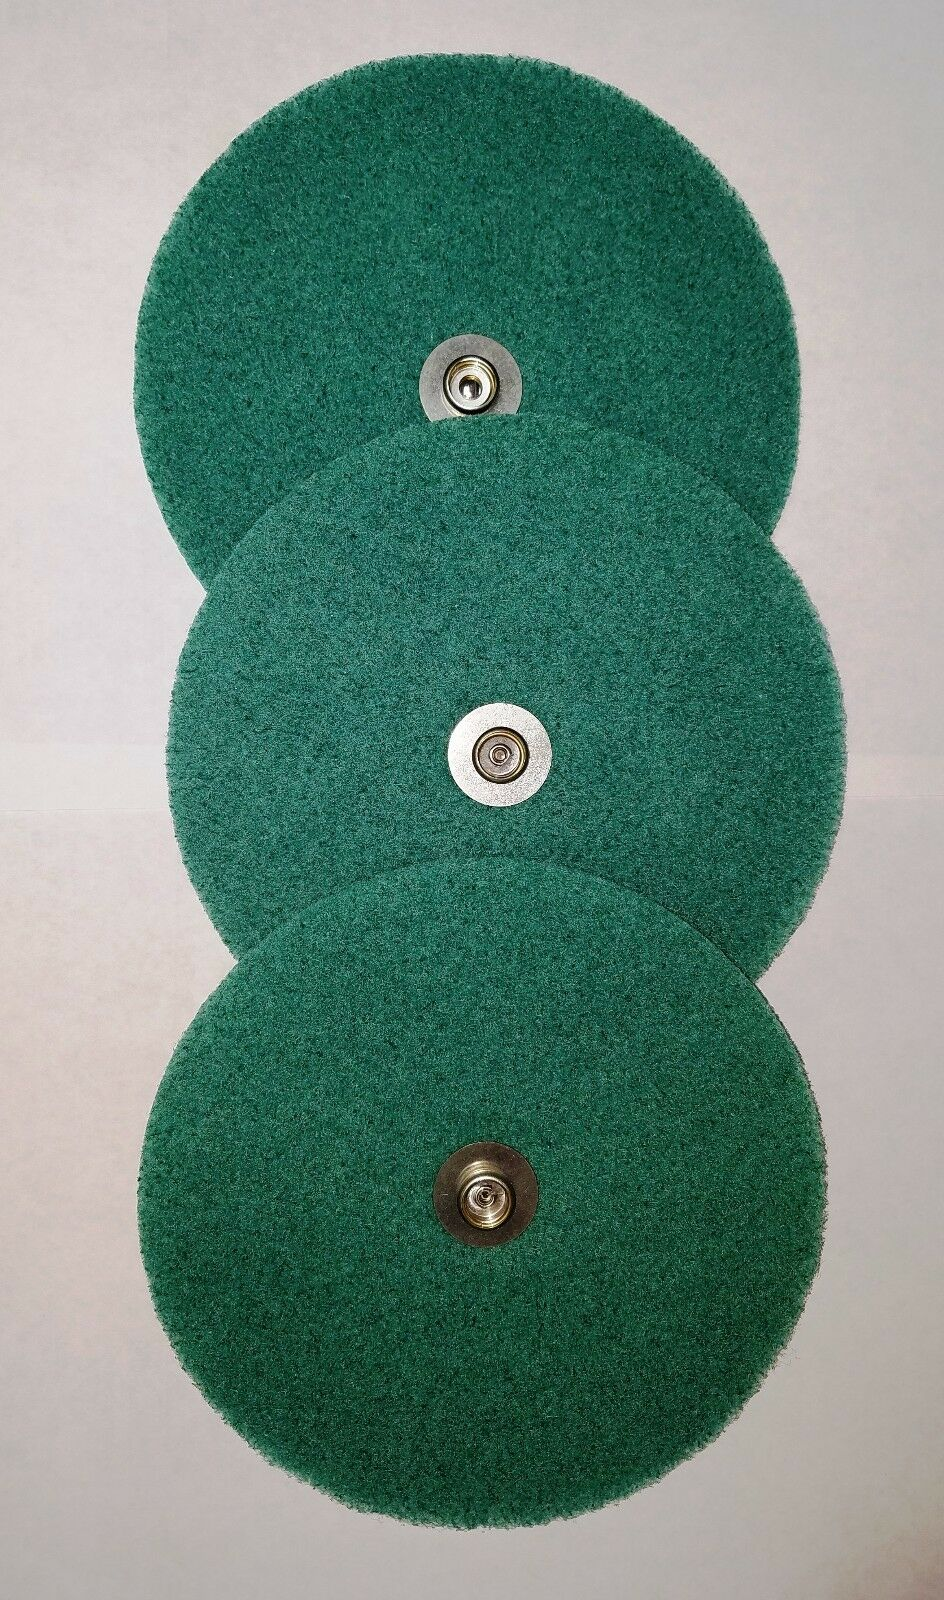 3pk Scrub Pads Green, for Electrolux Polisher Replaces part 6938 Part 26-3802-01